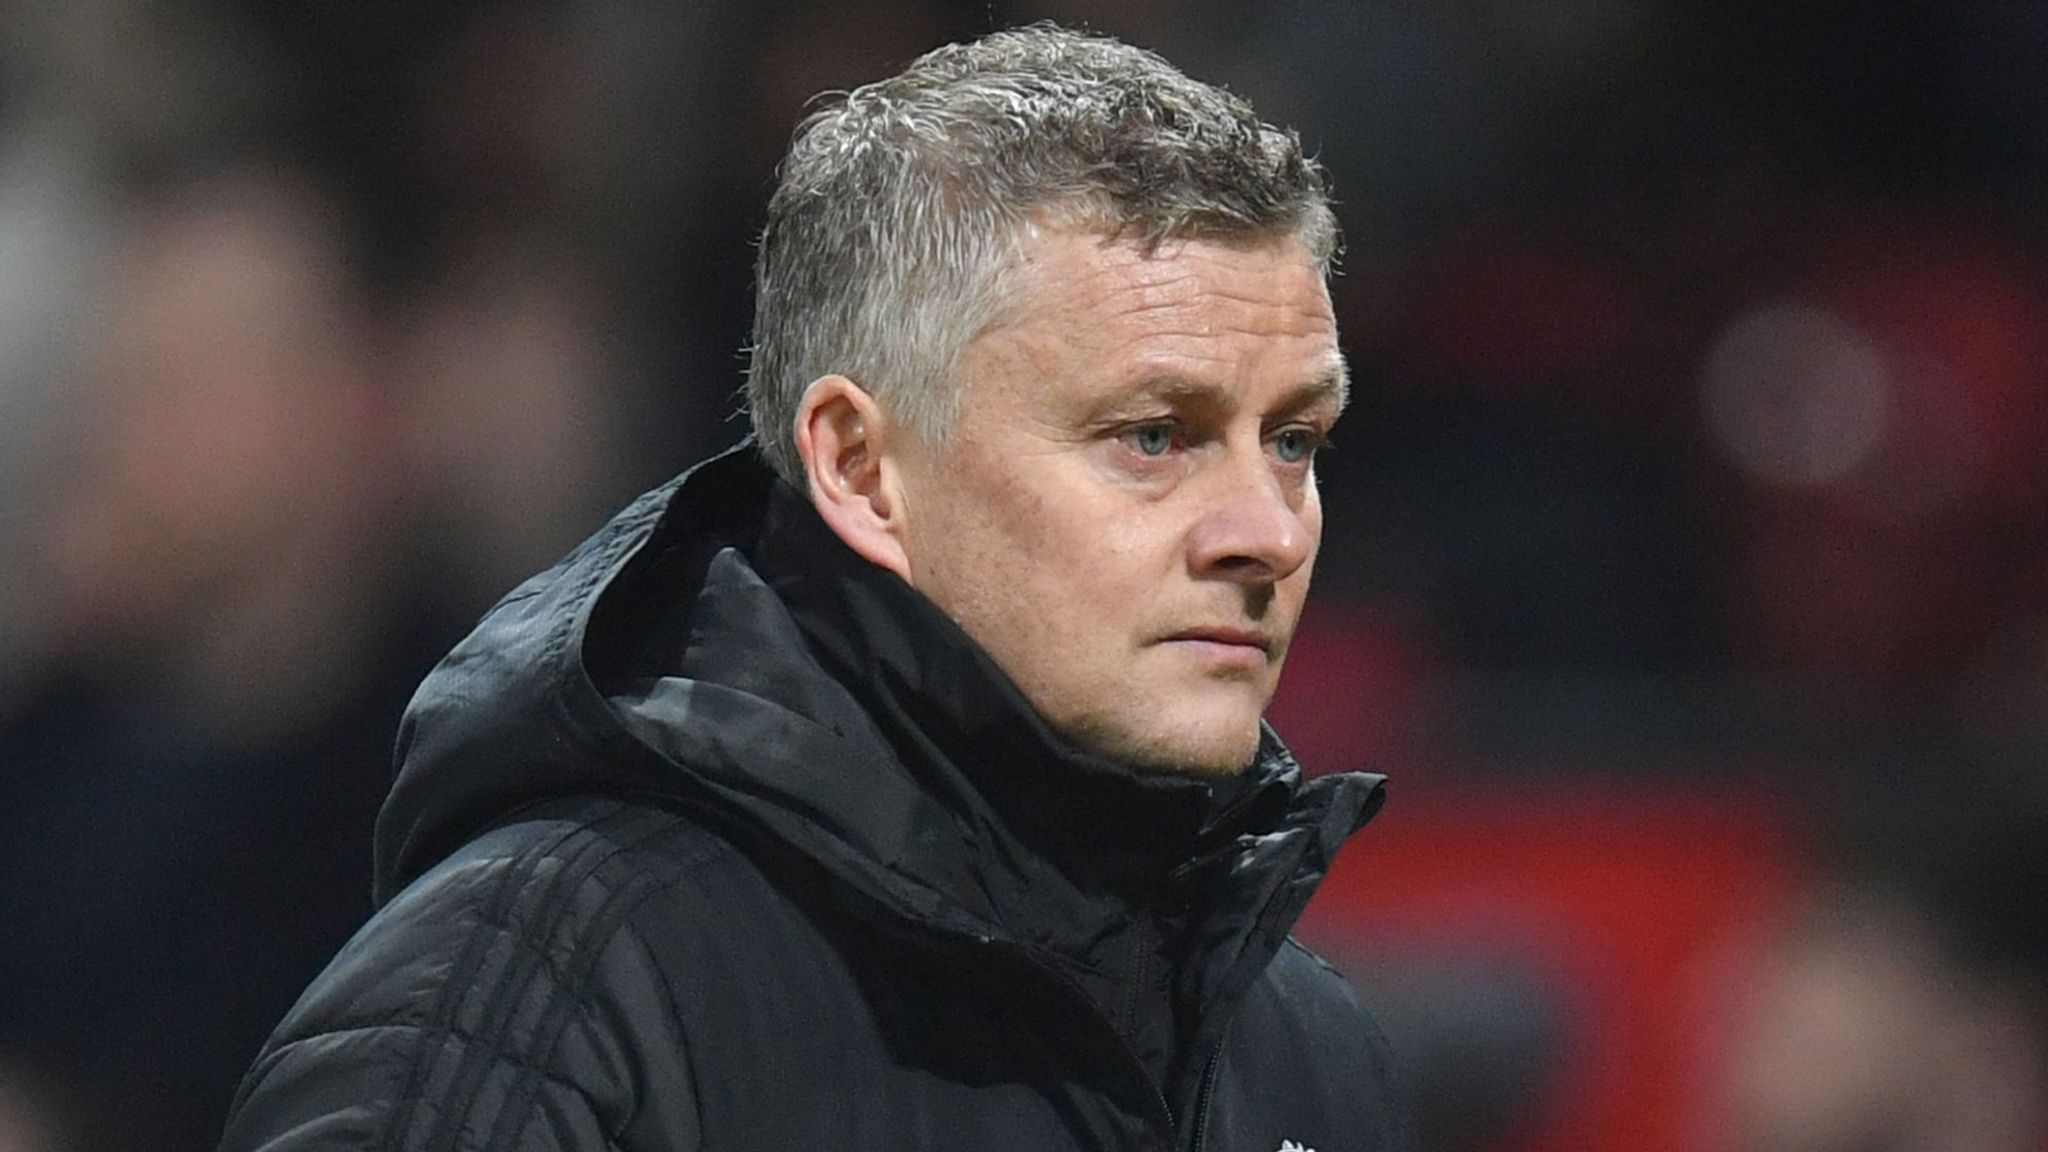 Ole Gunnar Solskjaer says Manchester United need to make 'quality' signings after Burnley defeat